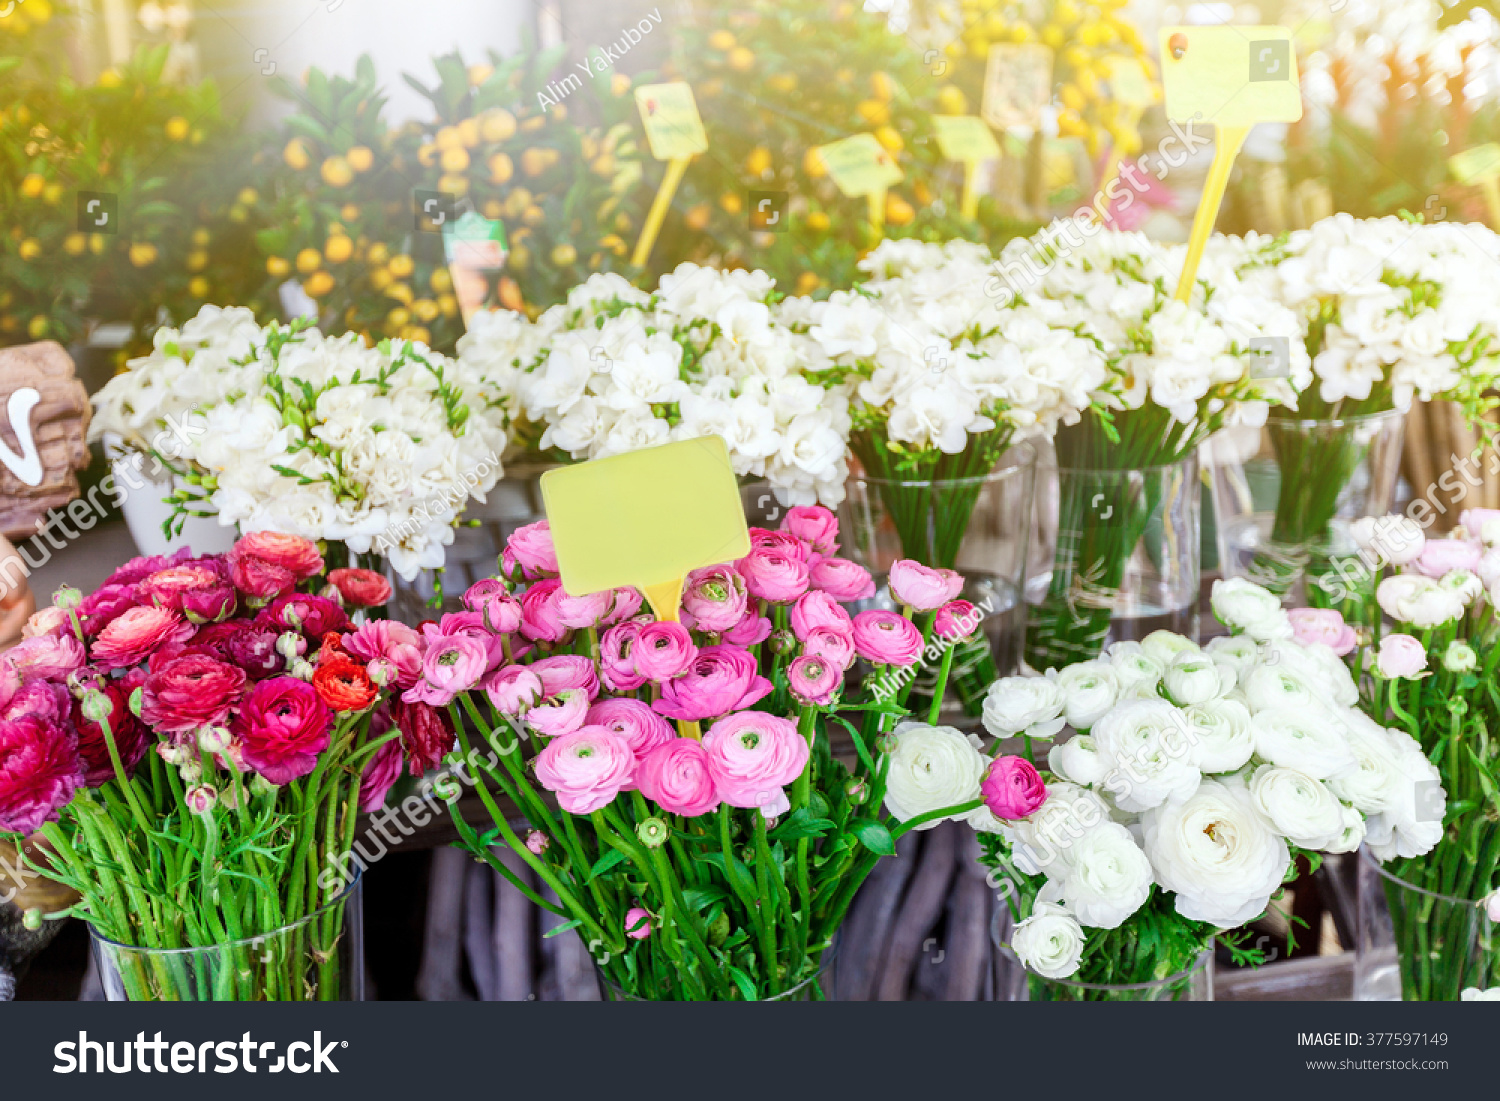 Beautiful colorful flowers flower shop stock photo edit now beautiful colorful flowers in flower shop izmirmasajfo